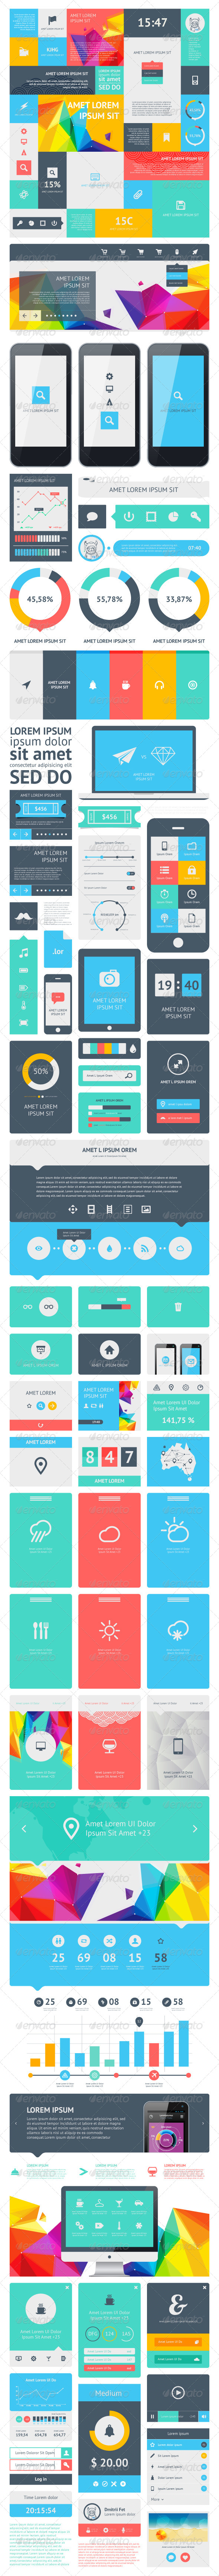 UI Set Components Featuring Flat Design - Web Elements Vectors